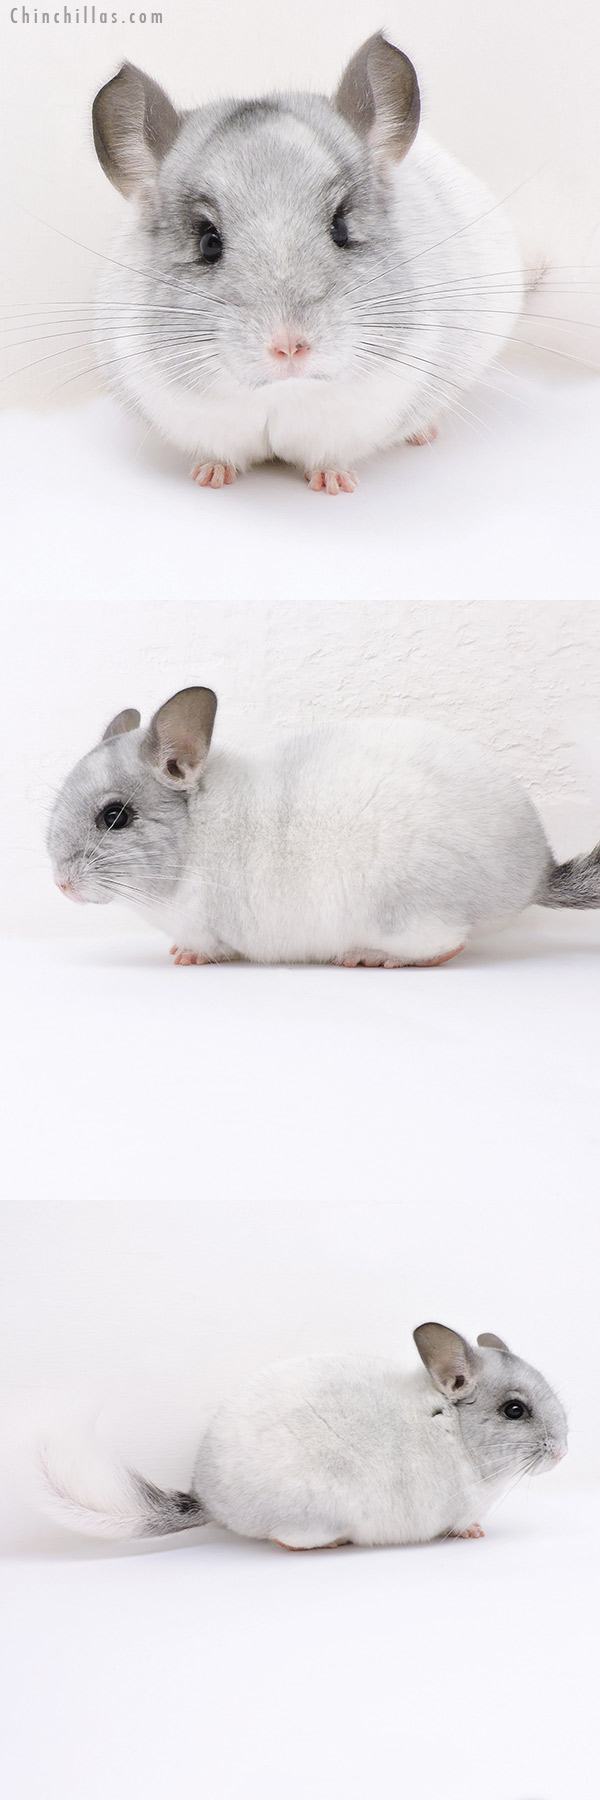 19031 Brevi Type Herd Improvement Quality White Mosaic Male Chinchilla